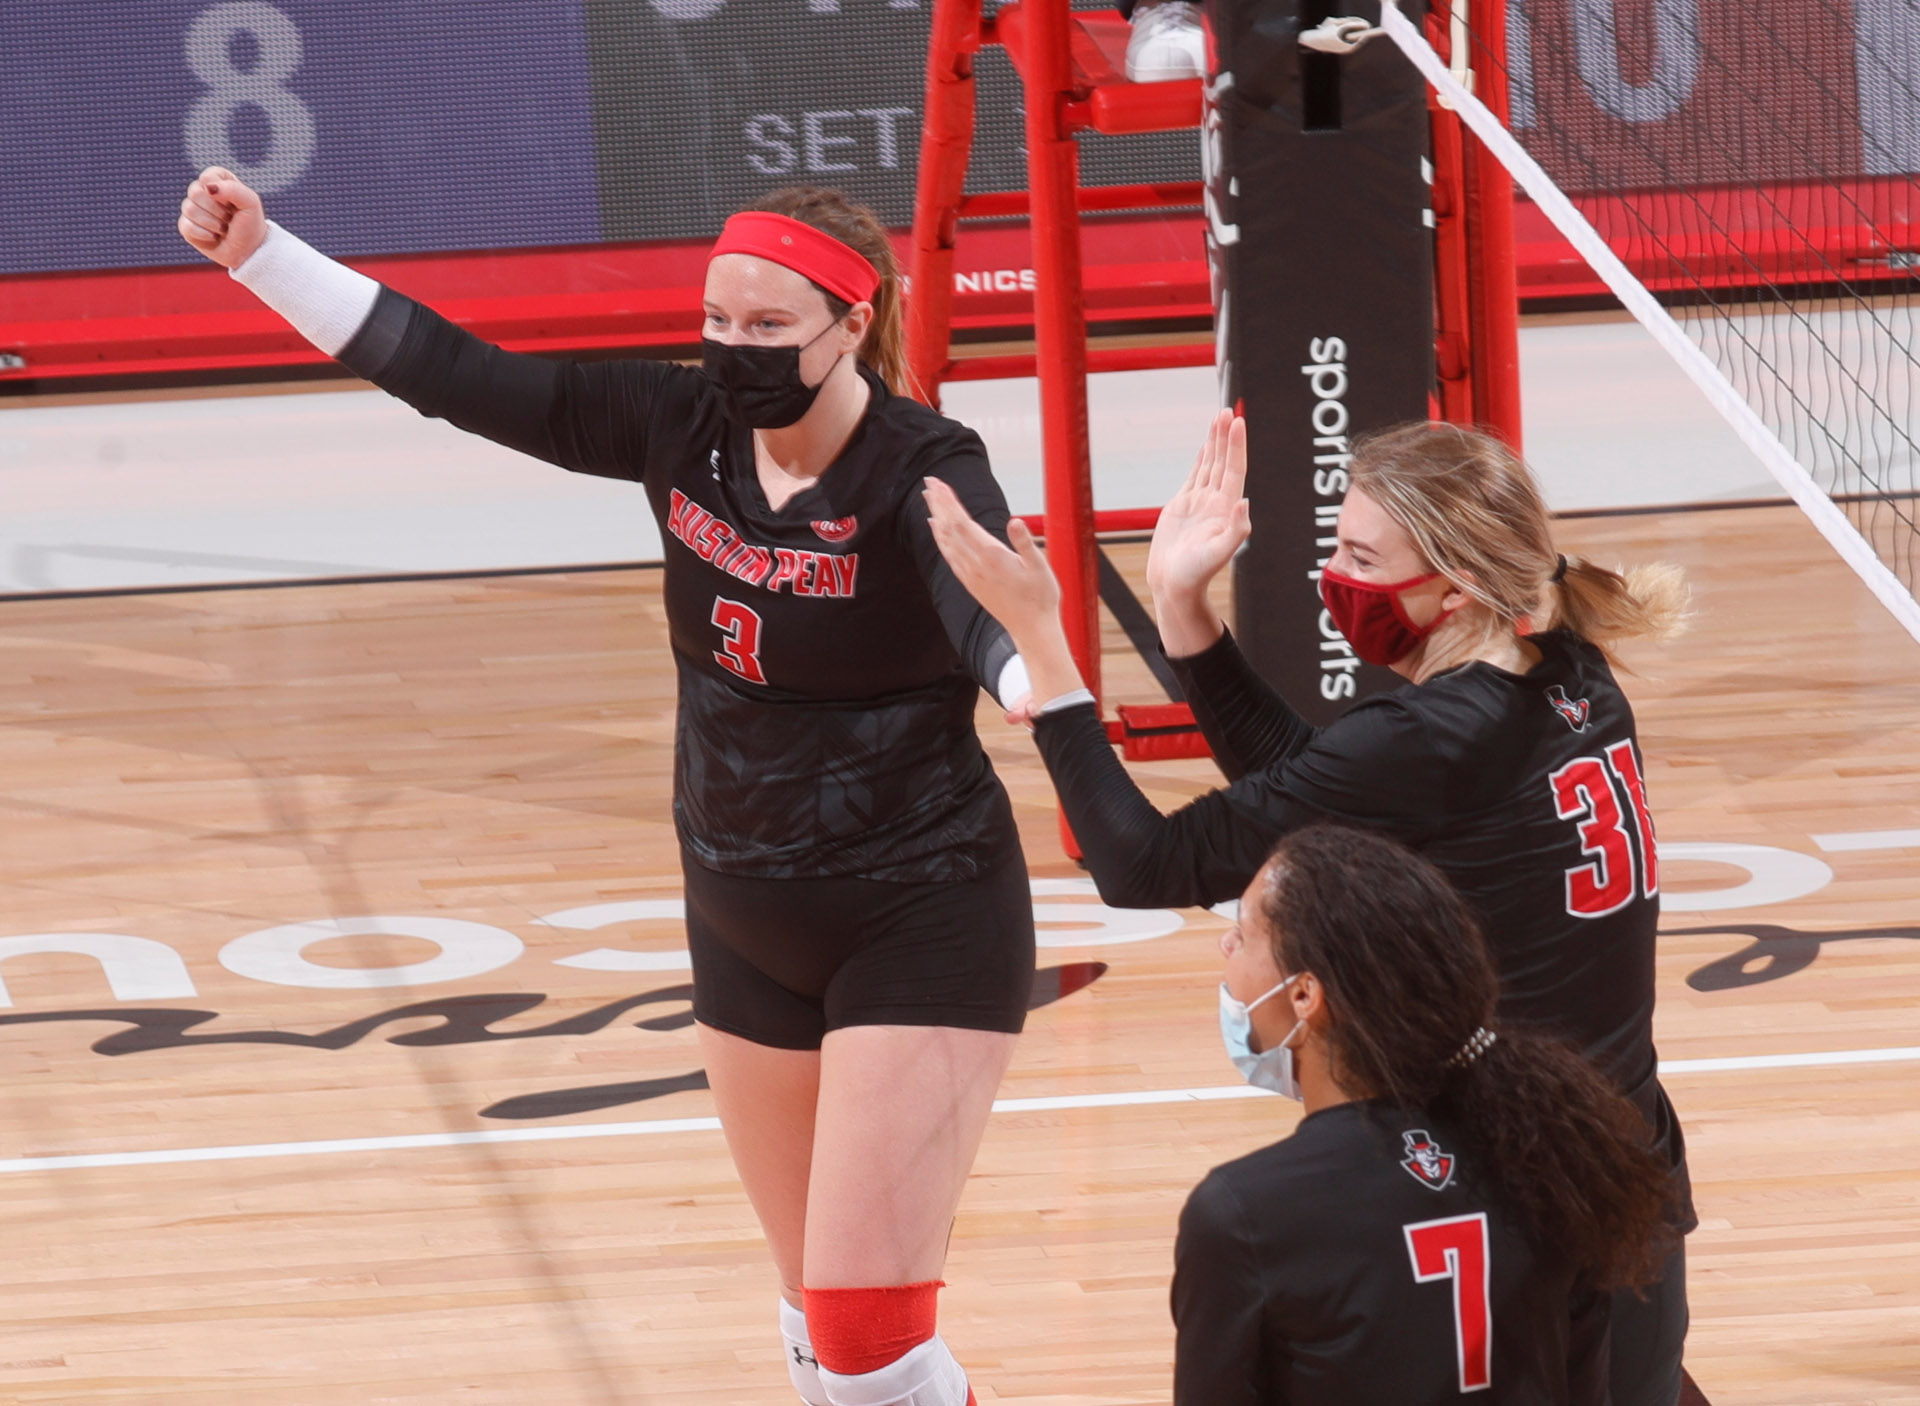 Brooke Moore (3) and the APSU volleyball team swept Tennessee Tech in each of their first two games this season. ROBERT SMITH   APSU ATHLETICS